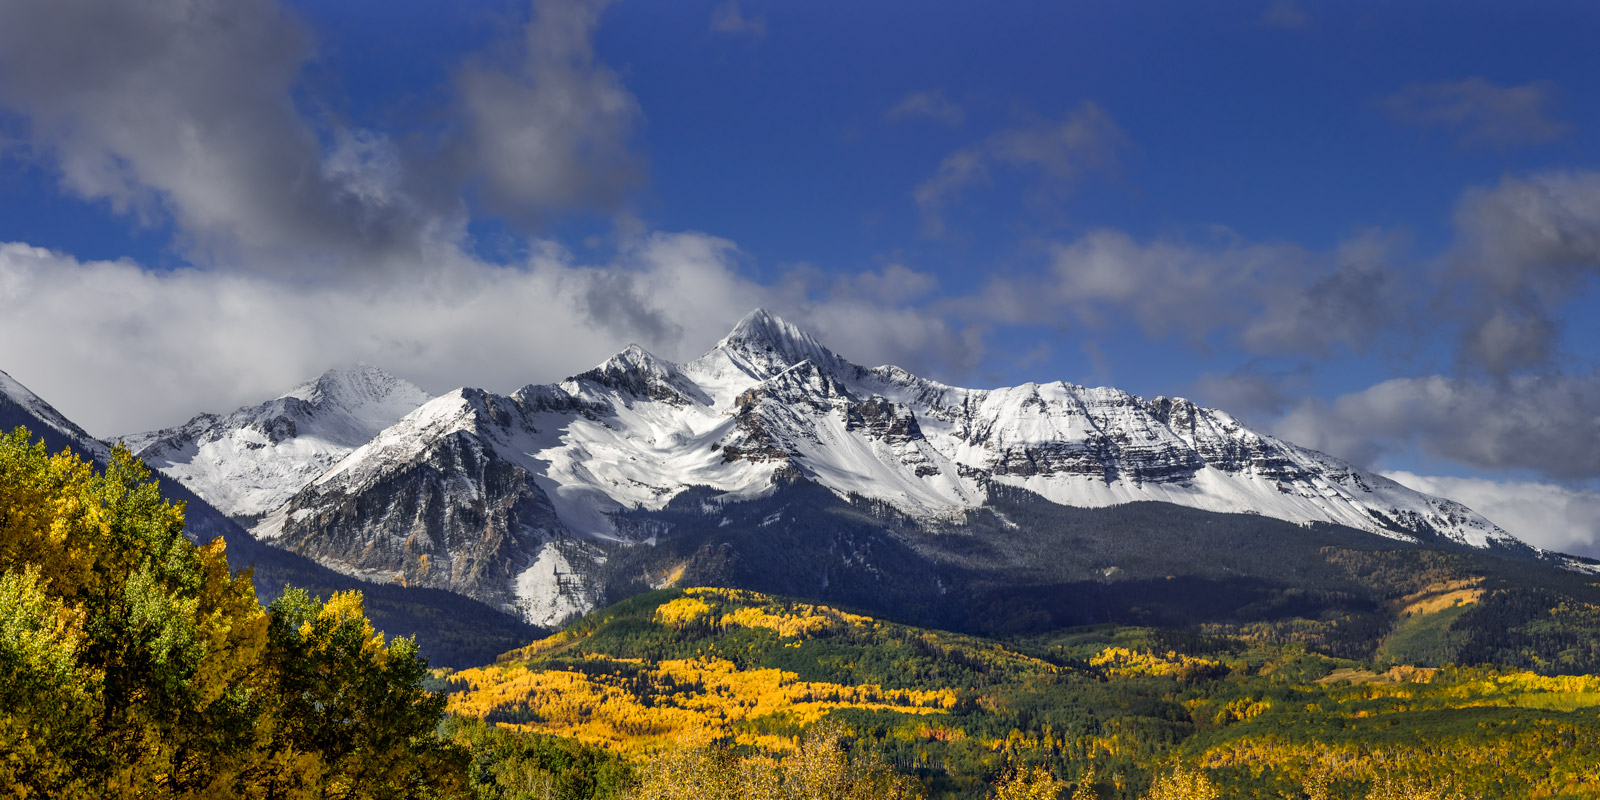 A Limited Edition, Fine Art photograph of a snow covered Wilson Peak with beautiful fall colors in the valley in front of the...